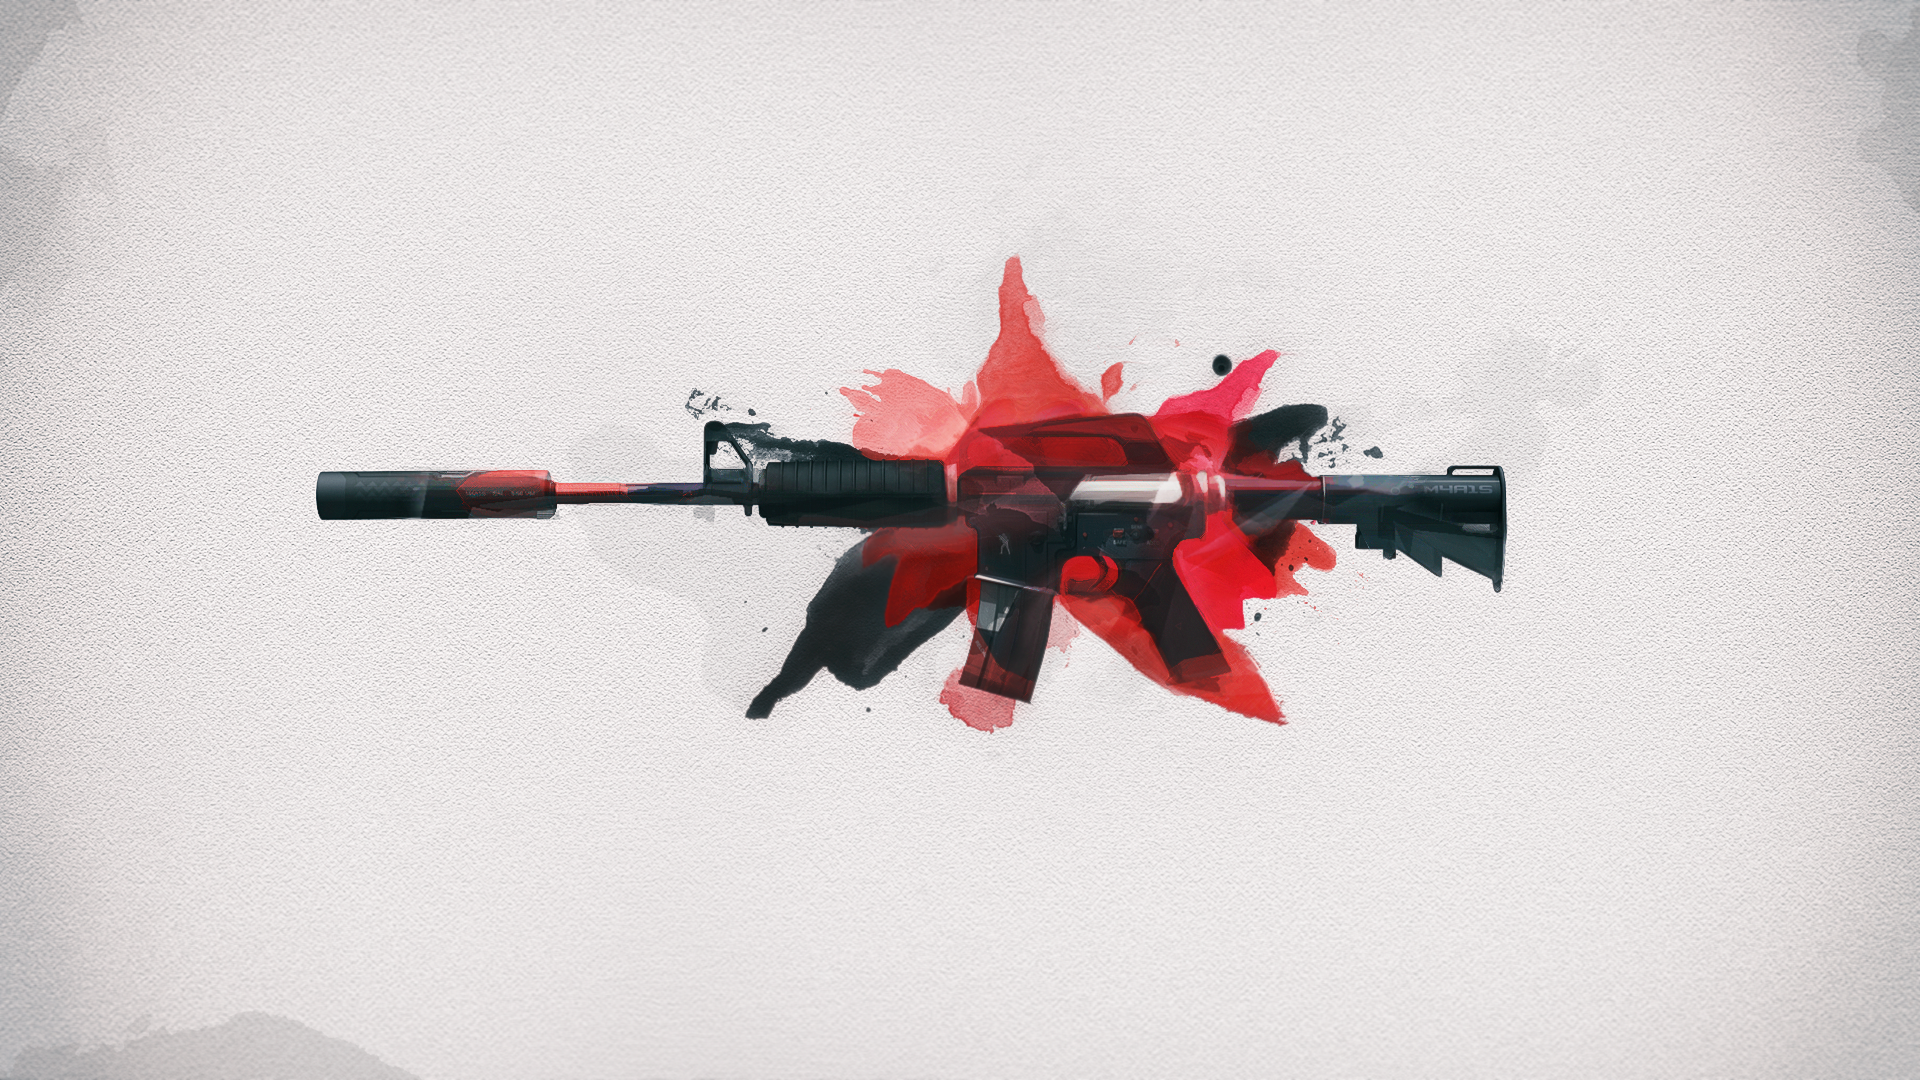 Watercolour Wallpaper Update Thread GlobalOffensive 1920x1080